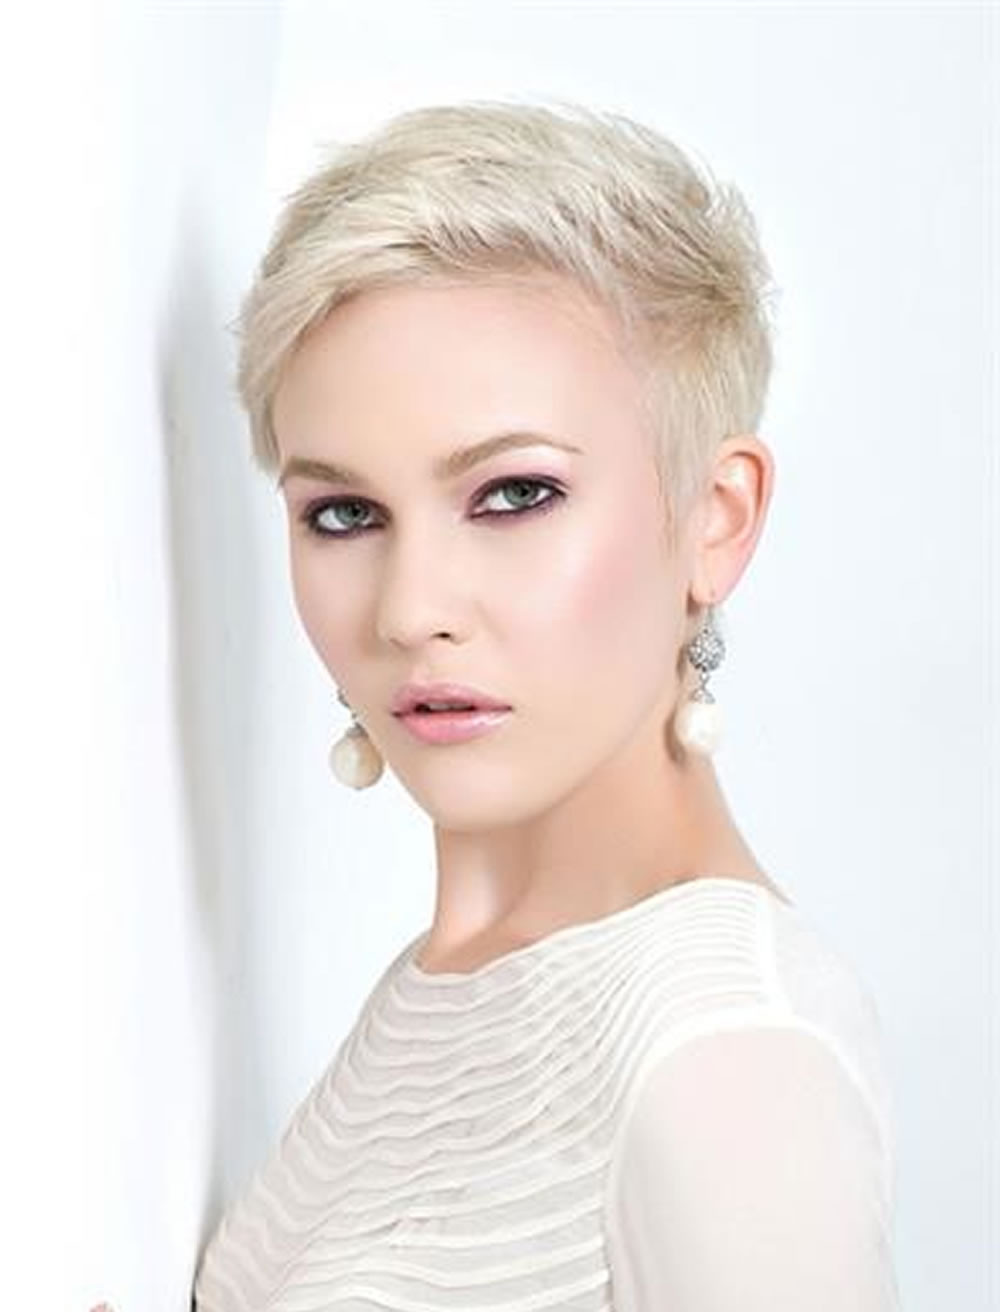 Short Hairstyles For Thick Hair 2019  Trend Pixie Haircuts for Thick Hair 2018 2019 28